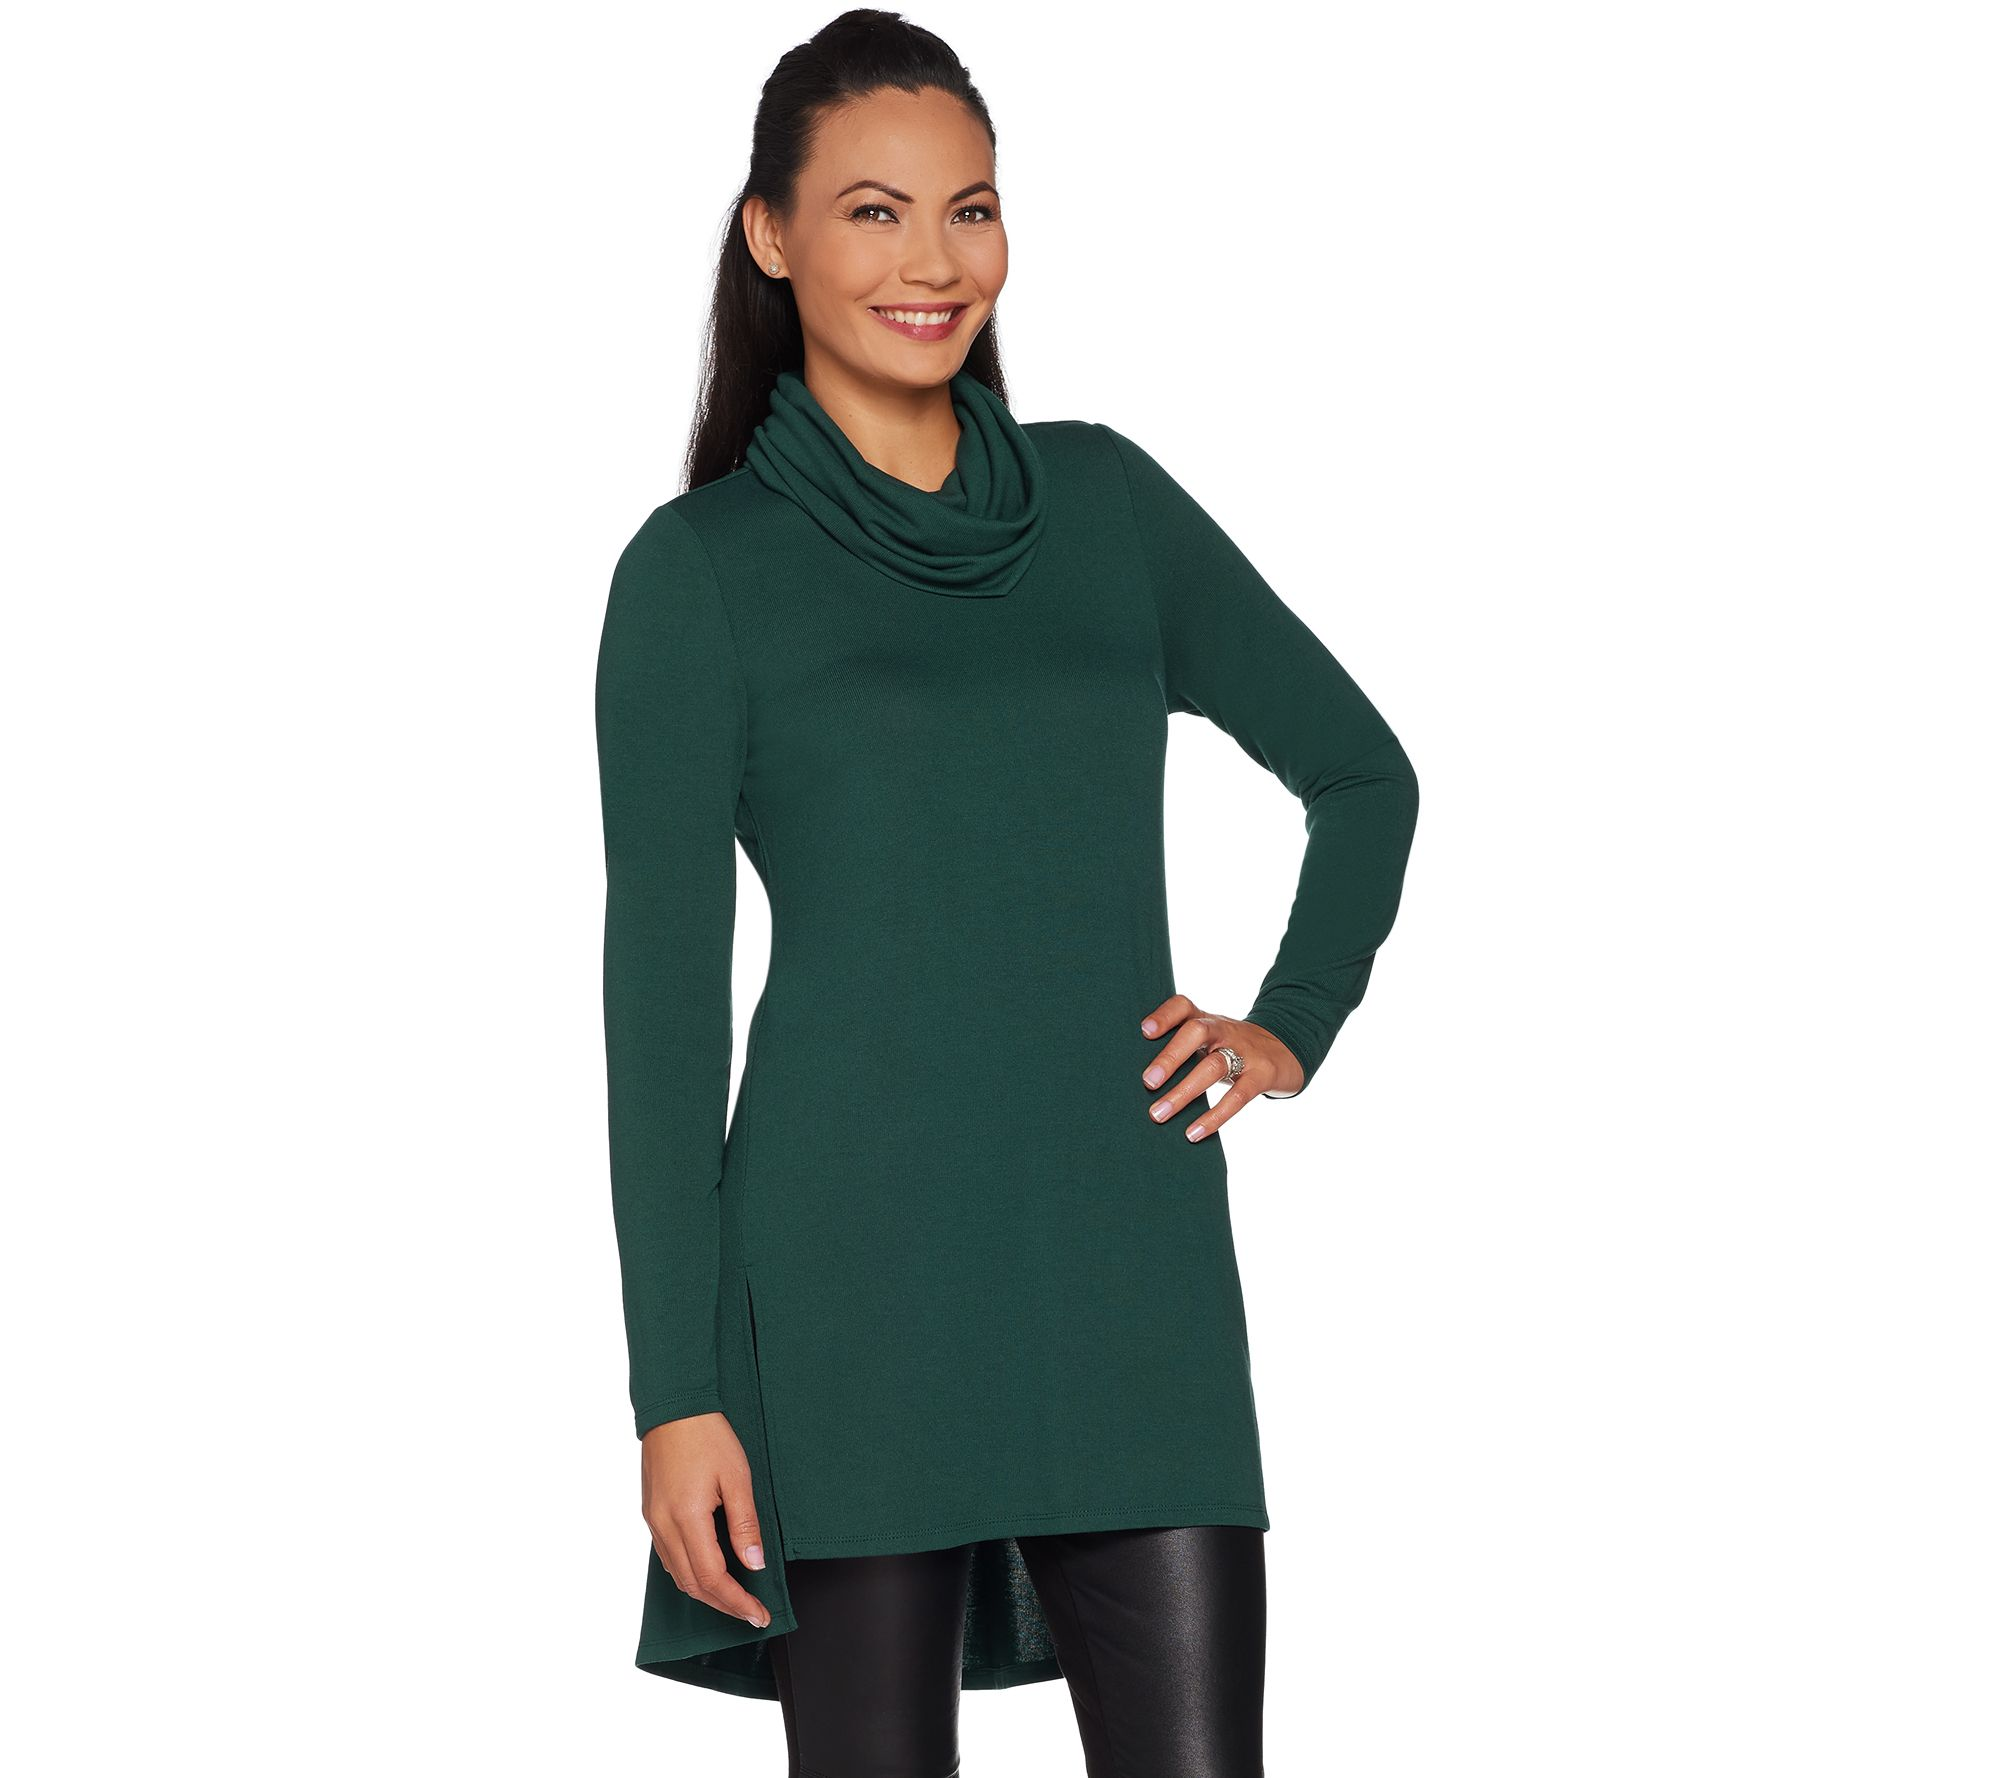 f033f190d5747b Lisa Rinna Collection Regular Cowl Neck Tunic with Seam Detail - Page 1 —  QVC.com